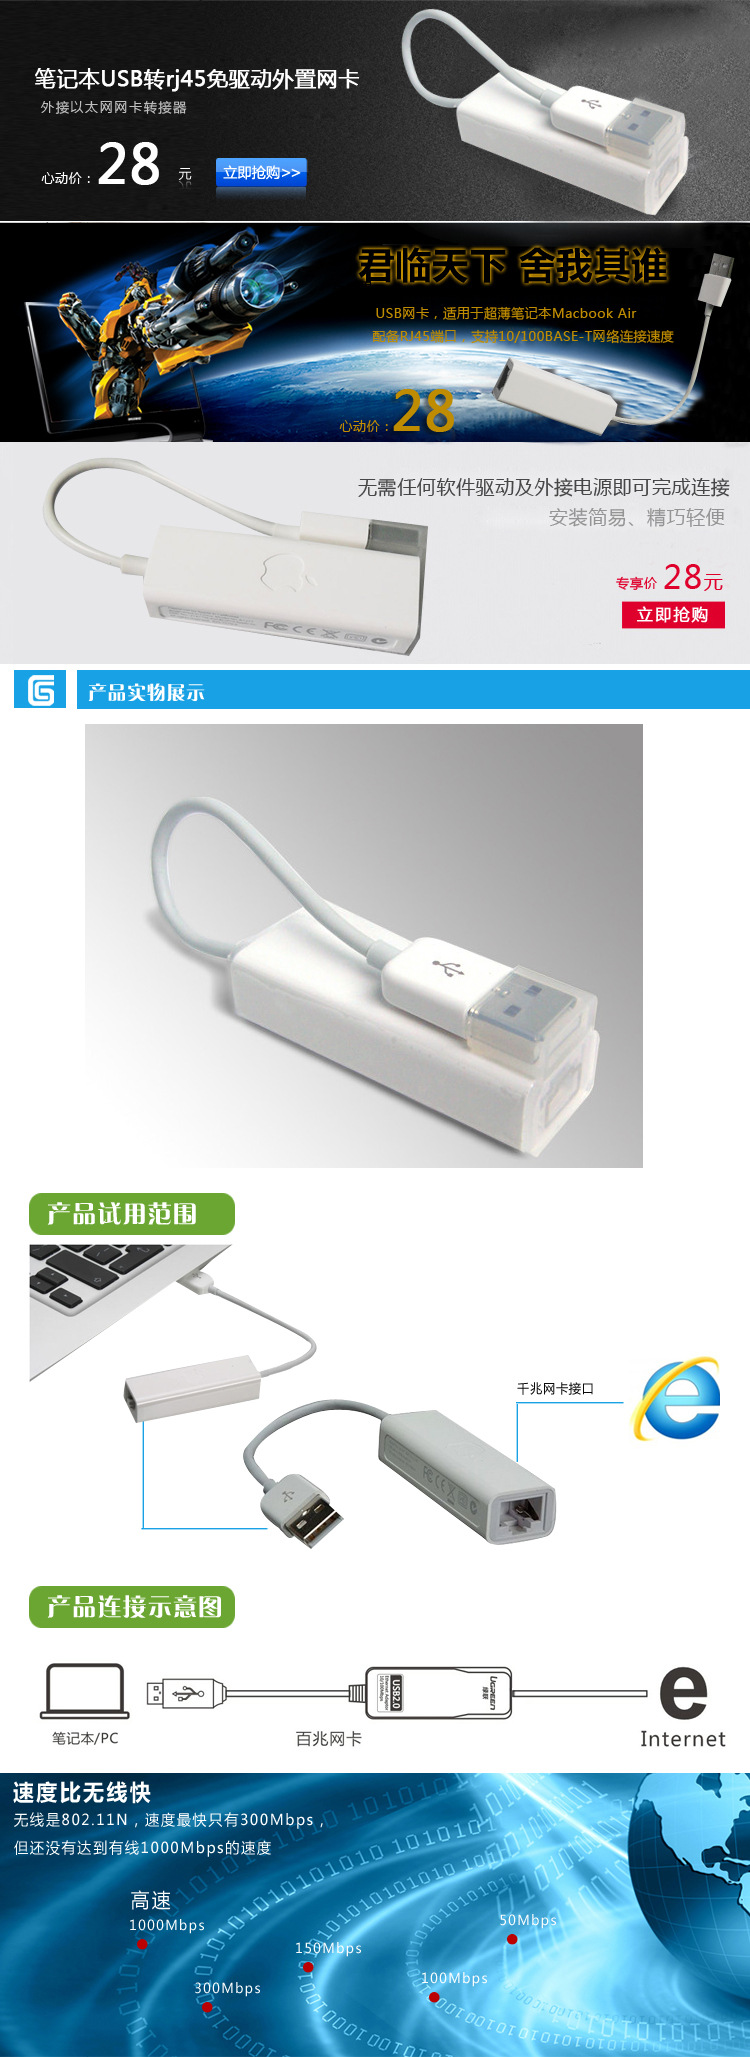 Card mạng  The recommended selling notebook USB RJ45 NIC driver free external Ethernet adapter card